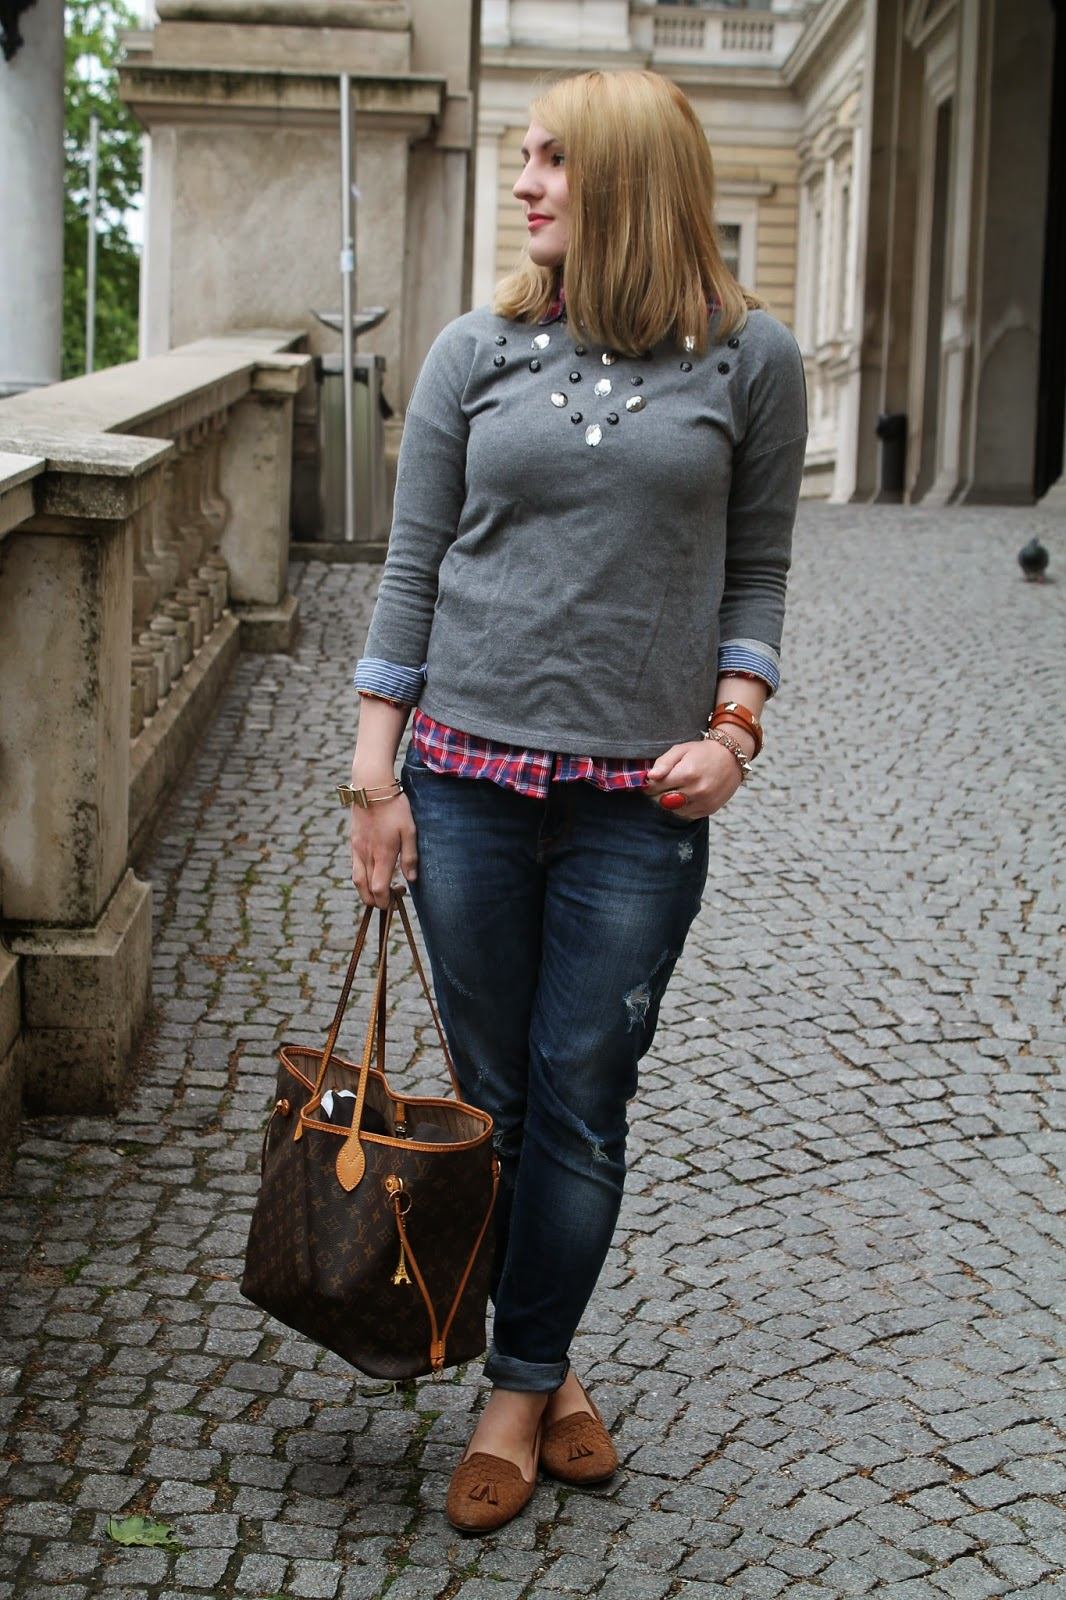 Fashionblogger Austria / Österreich / Deutsch / German / Kärnten / Carinthia / Klagenfurt / Köttmannsdorf / Spring Look / Classy / Edgy / Preppy / College Student Look / H&M/ Sweater / Ann Christine / Boyfriend Jeans / Tommy Hilfiger / Loafers / Forever 21 / Louis Vuitton Neverfull MC / Ernstings Family/